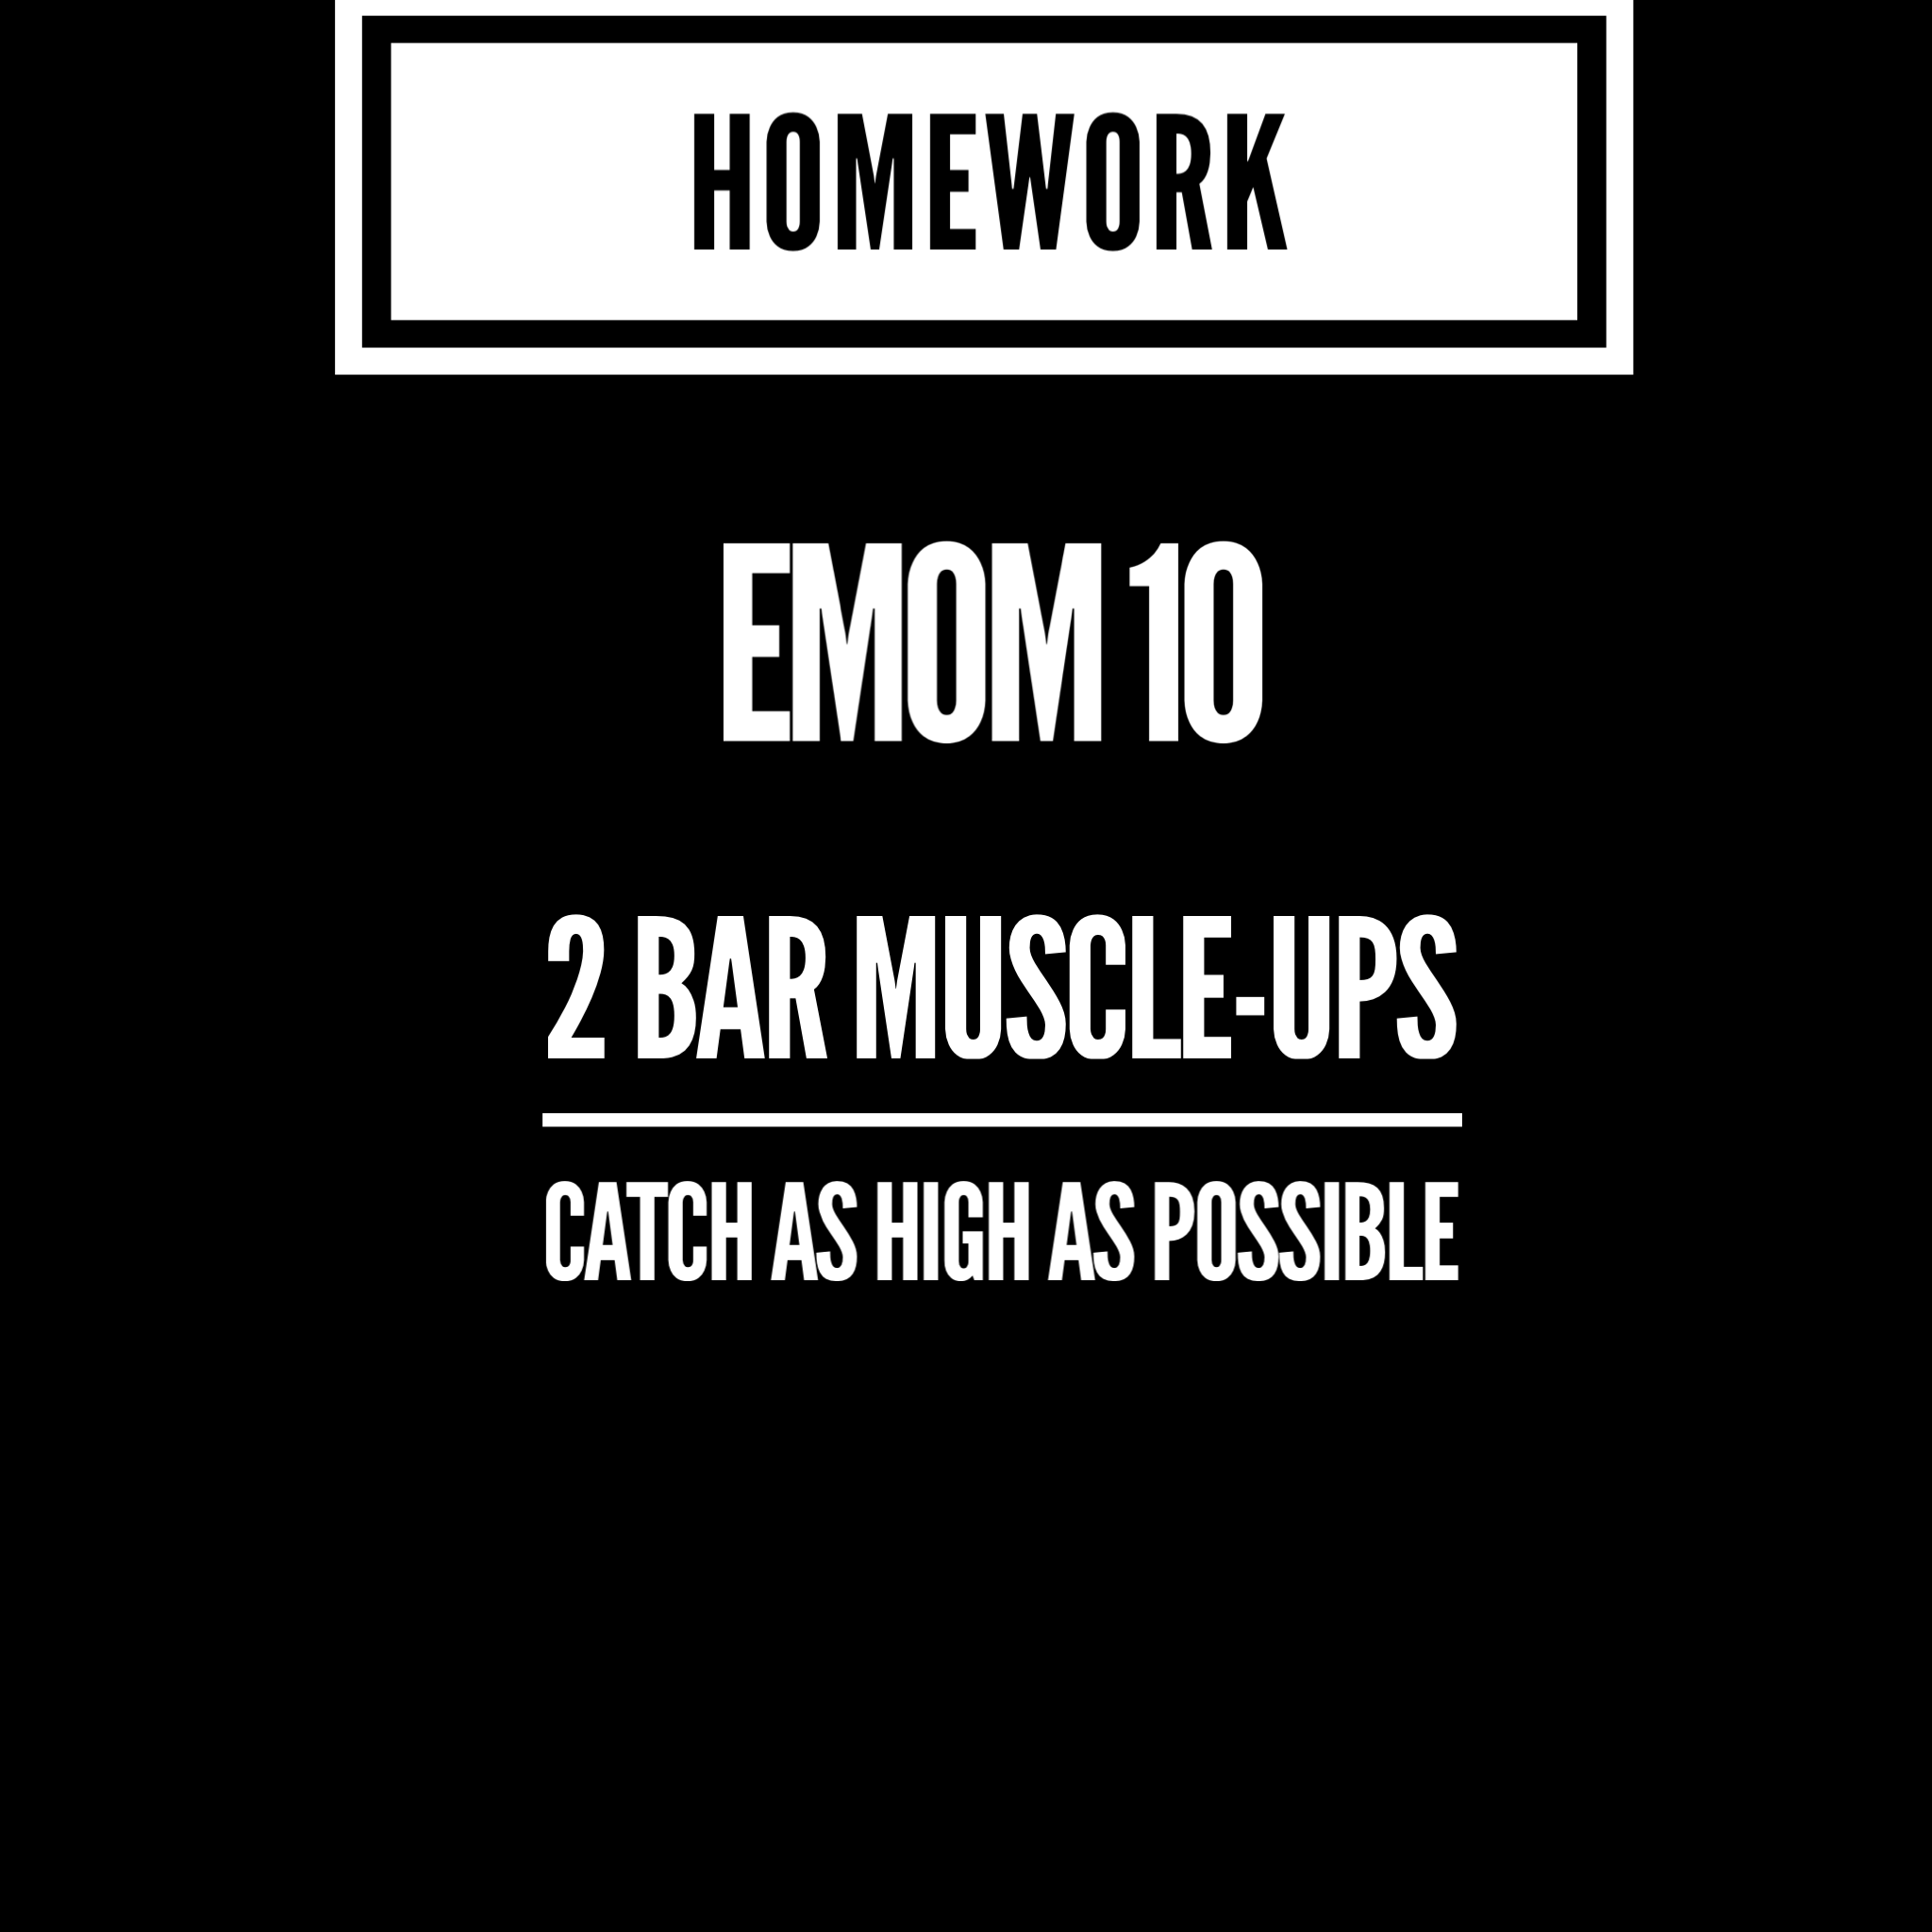 Or 2 Chest 2 Bar Pullups with as smooth a transition as possible. (Try butterfly for the first time). Make it two of the more difficult variation you are capable of on the bar.